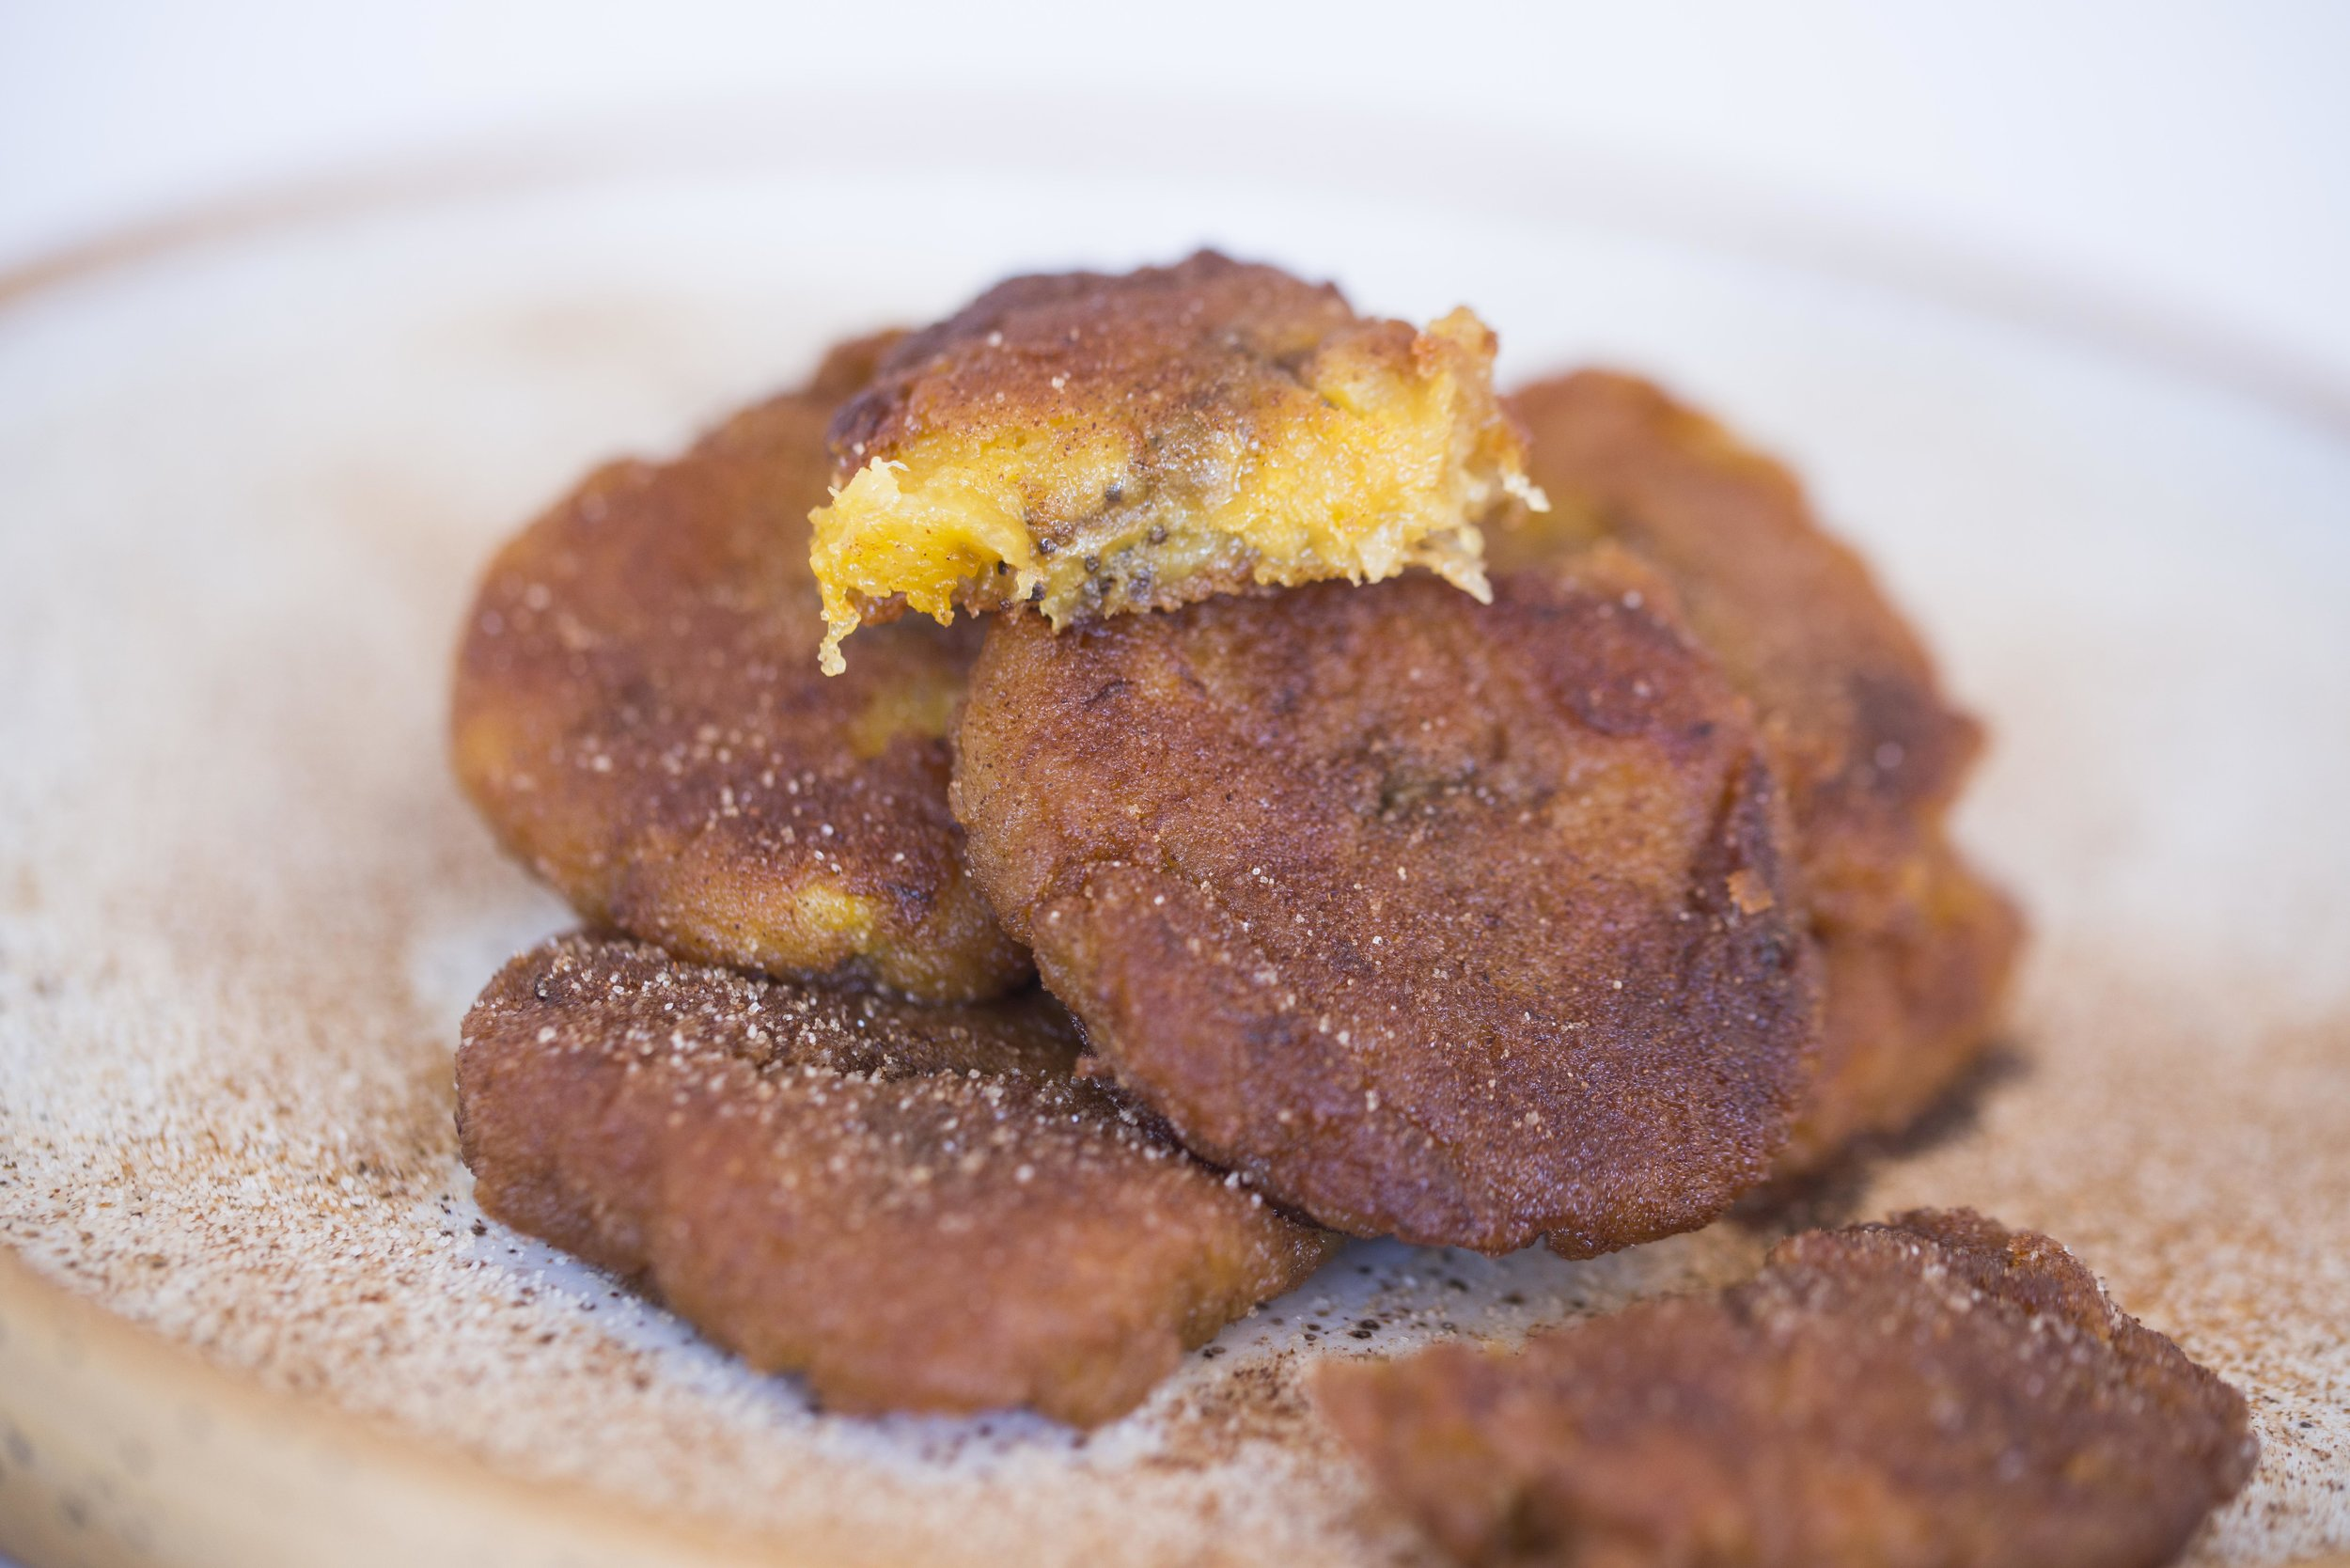 Mixed_And_Measured_Plantain_Pancakes_DSC_0381.jpg